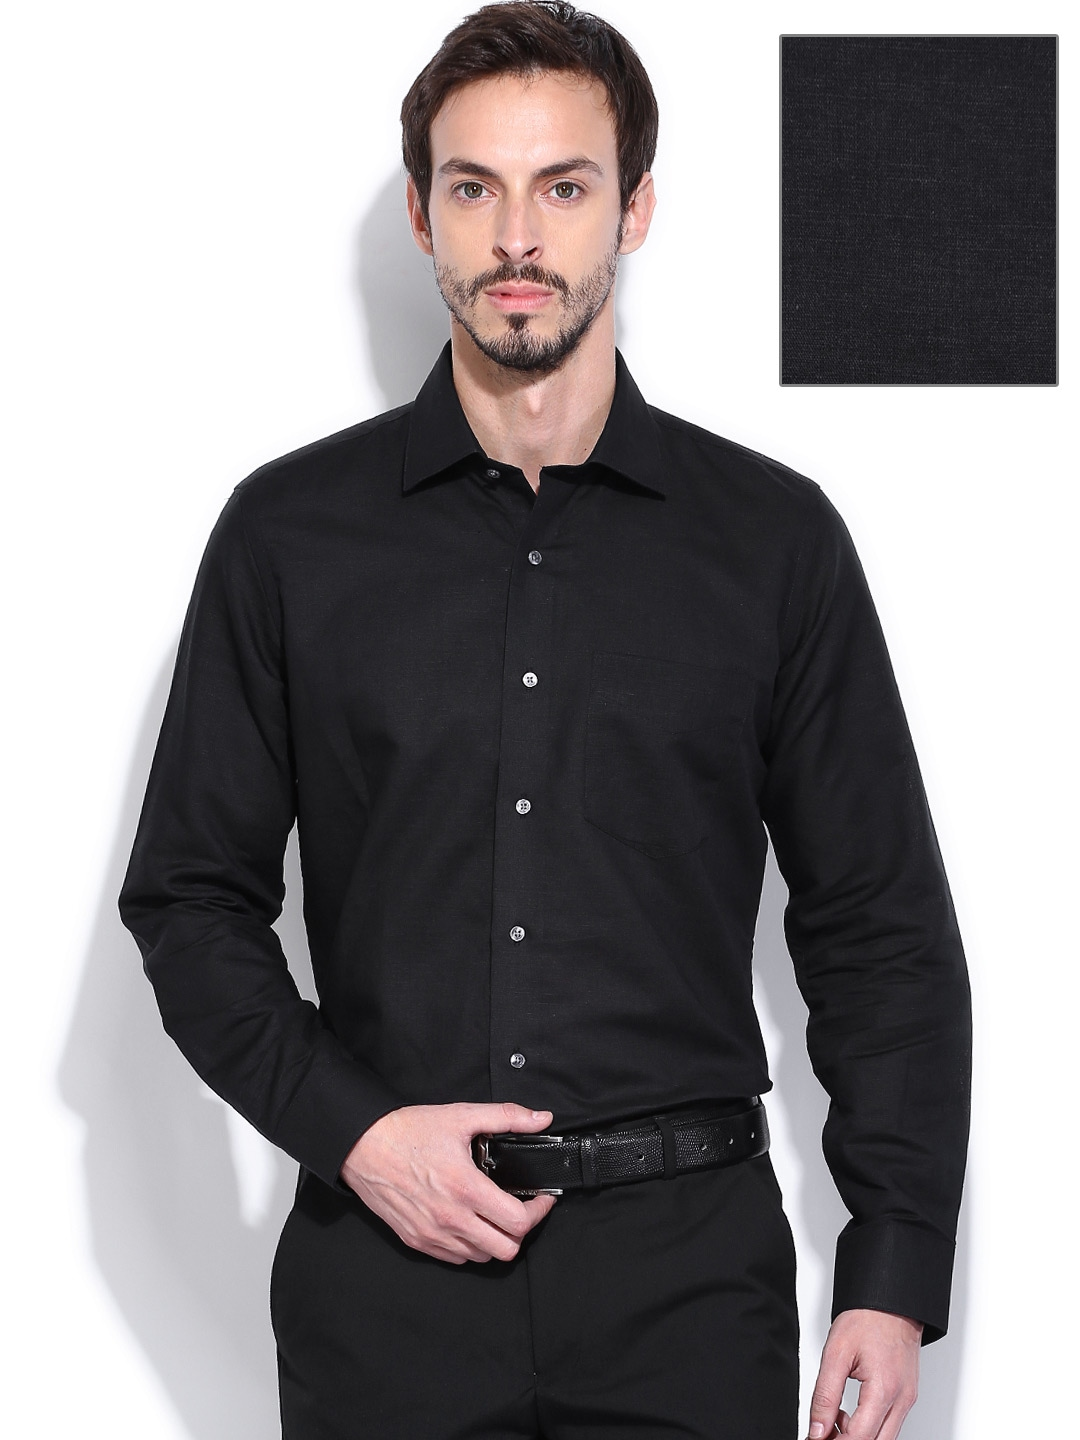 Formal black shirt is shirt for Black tuxedo shirt for men